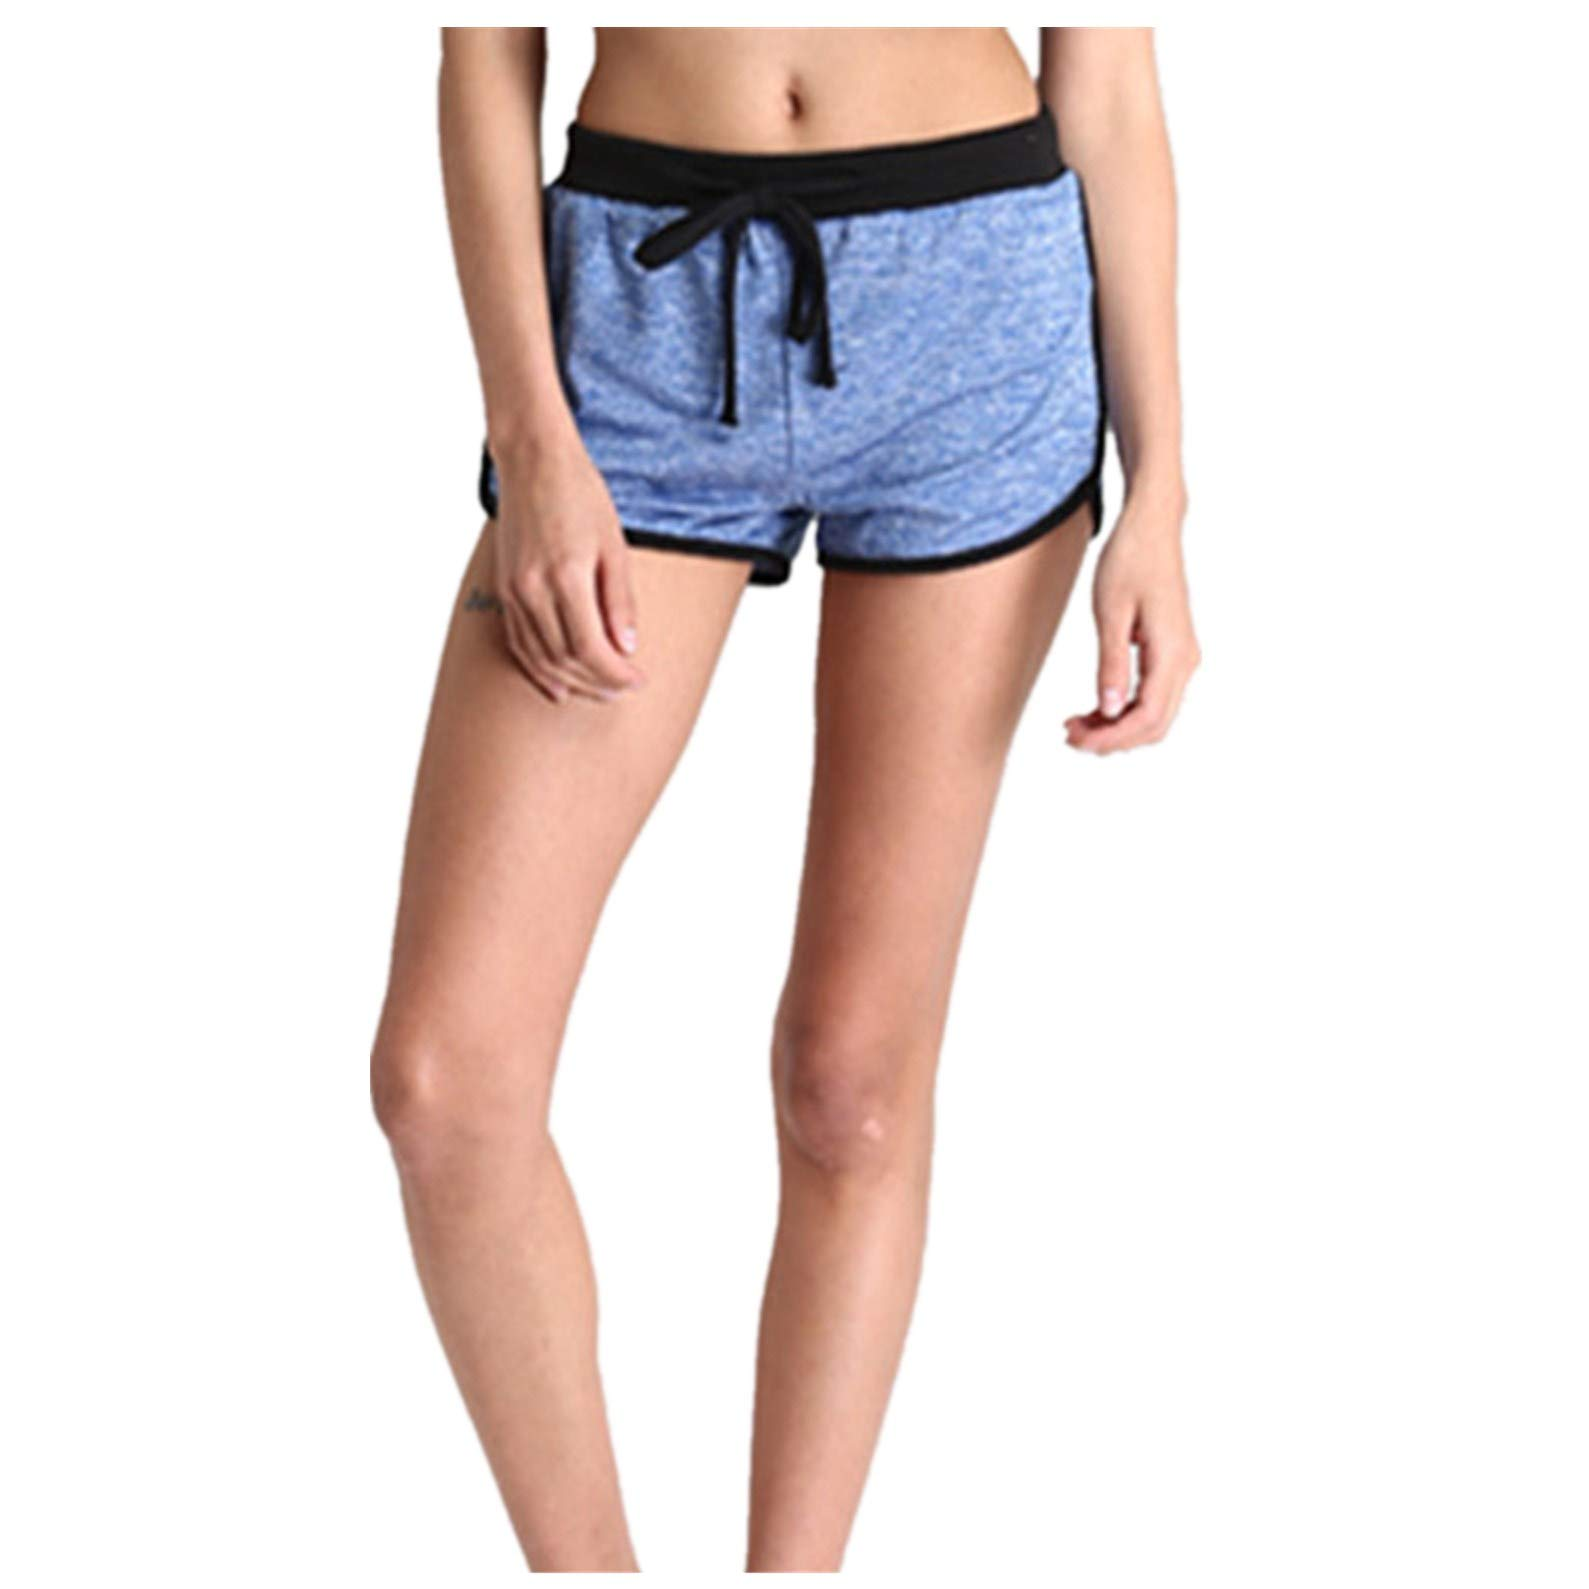 BSGSH Women's Contrast Trim Dolphin Yoga Workout Shorts Casual Comfy Lounge Shorts (M,Blue)